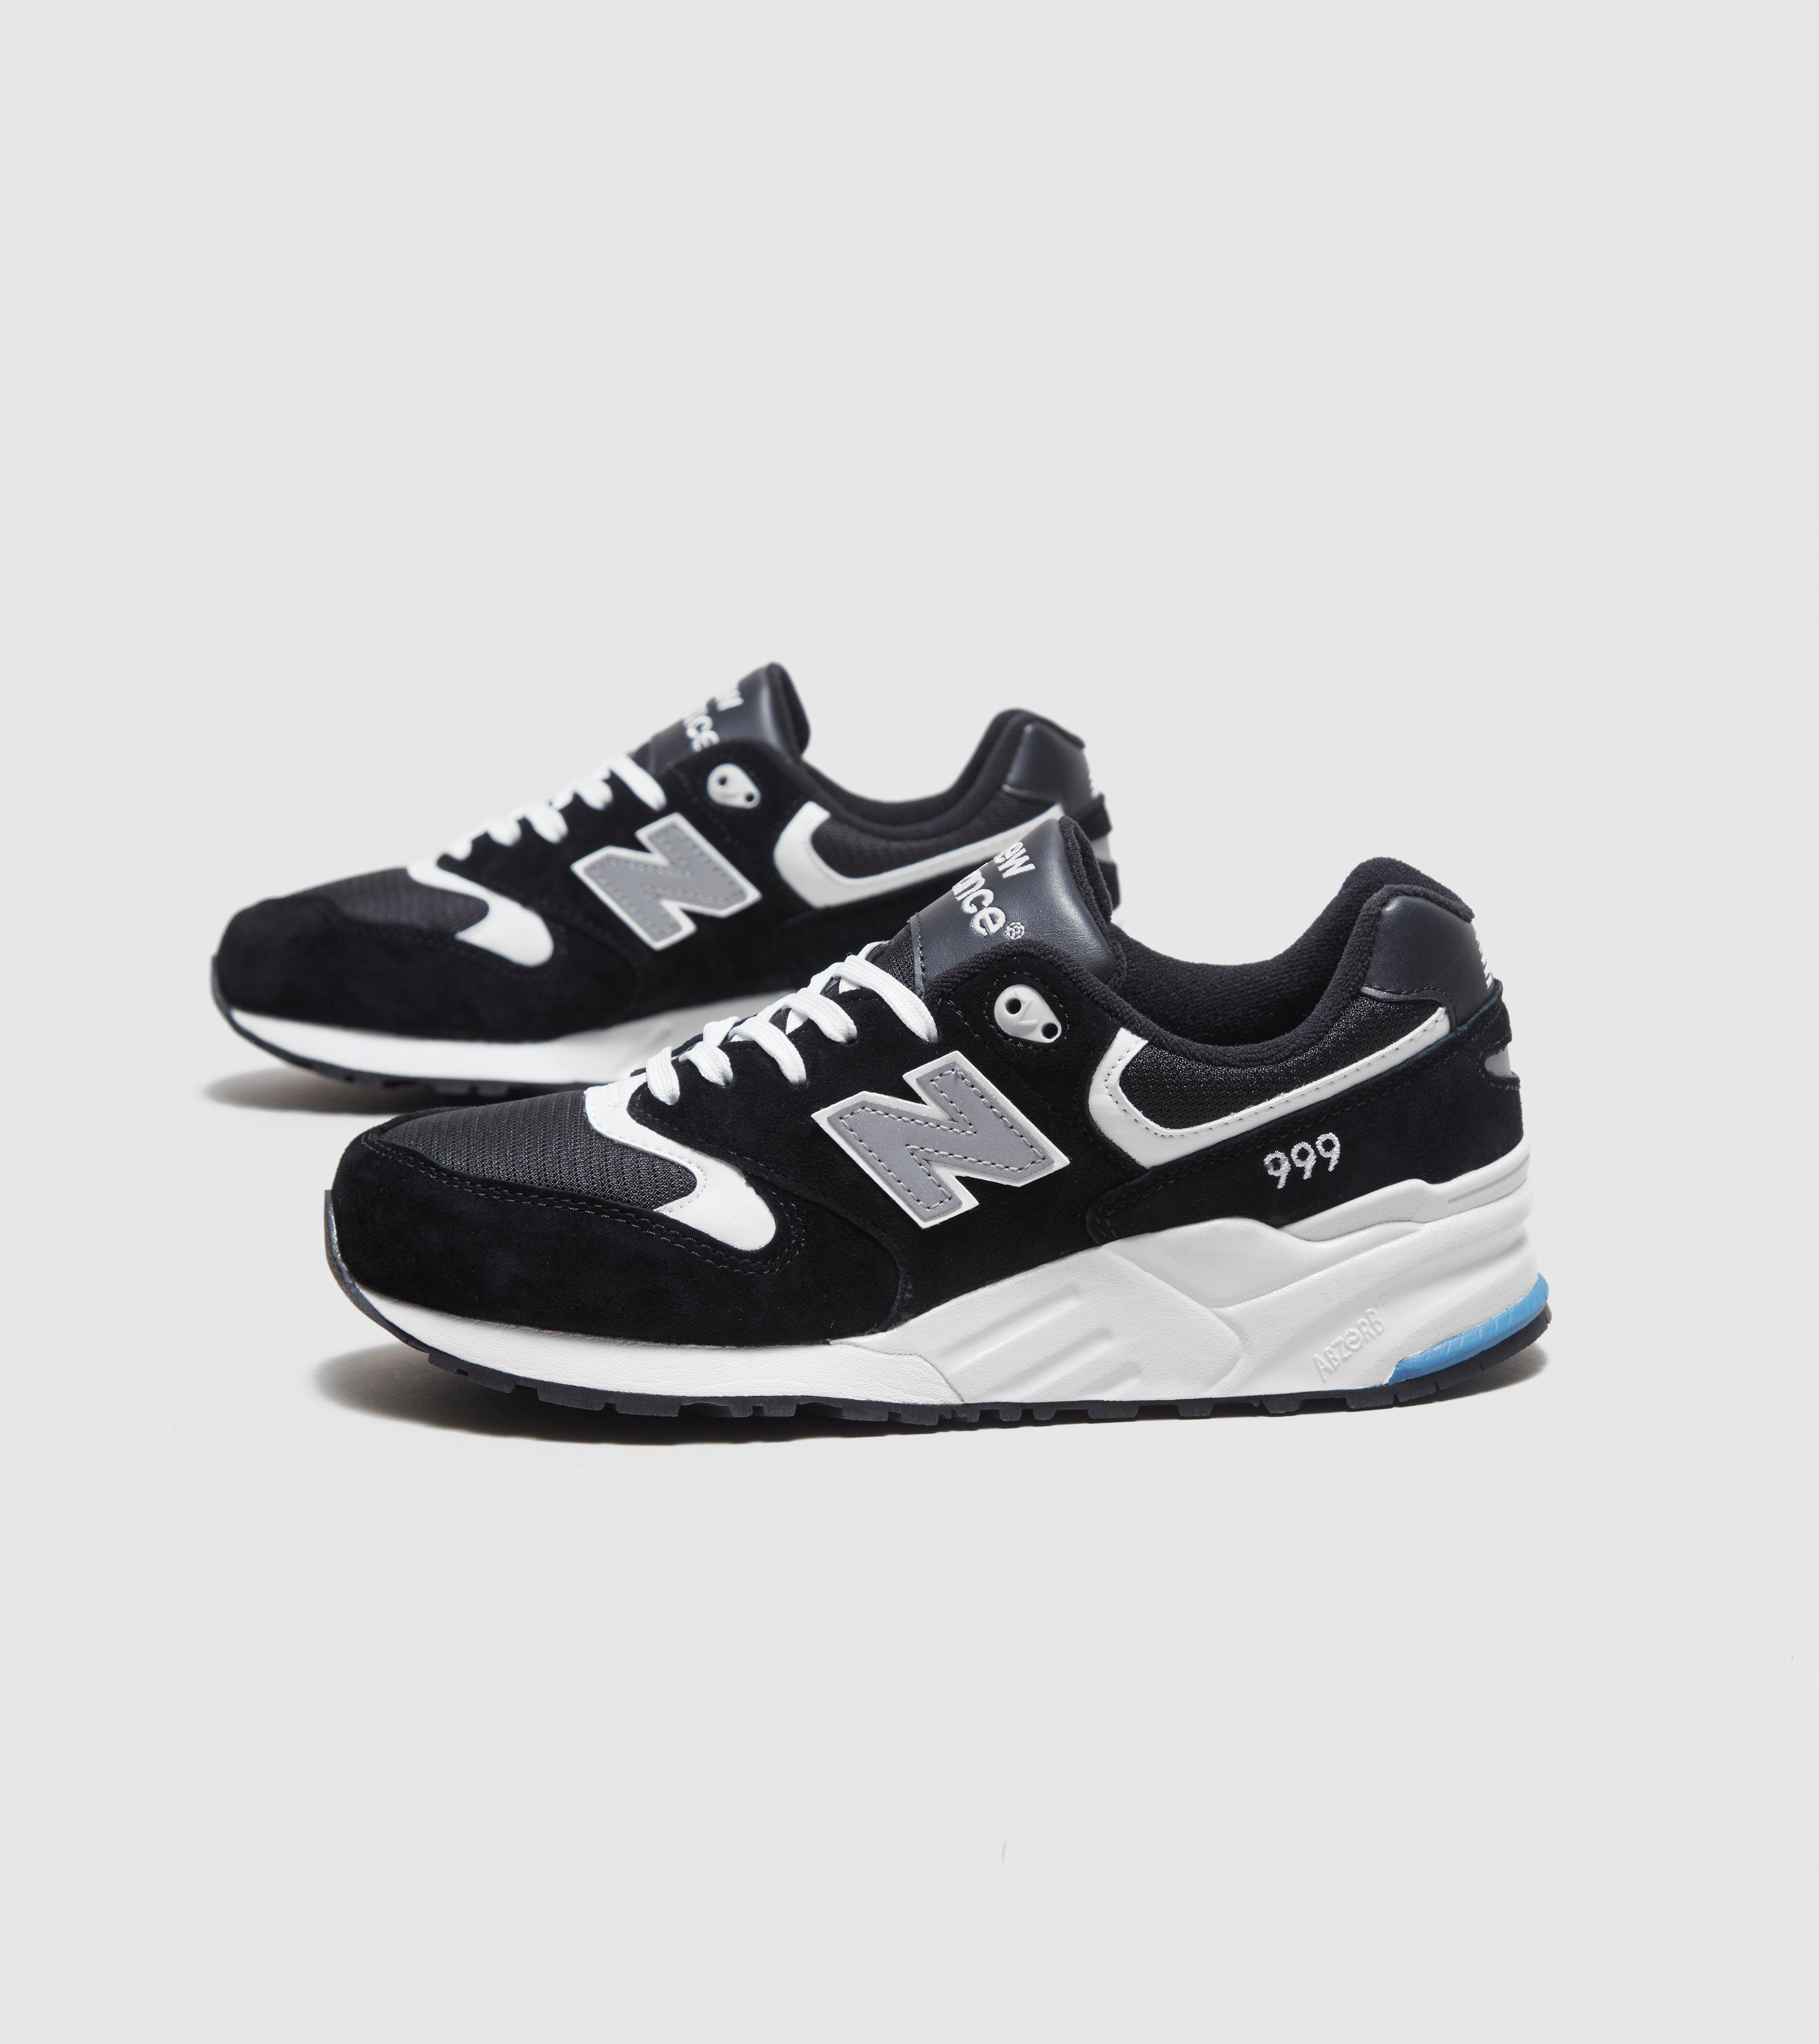 New Balance 996 All Black Philly Diet Doctor Dr Jon Fisher